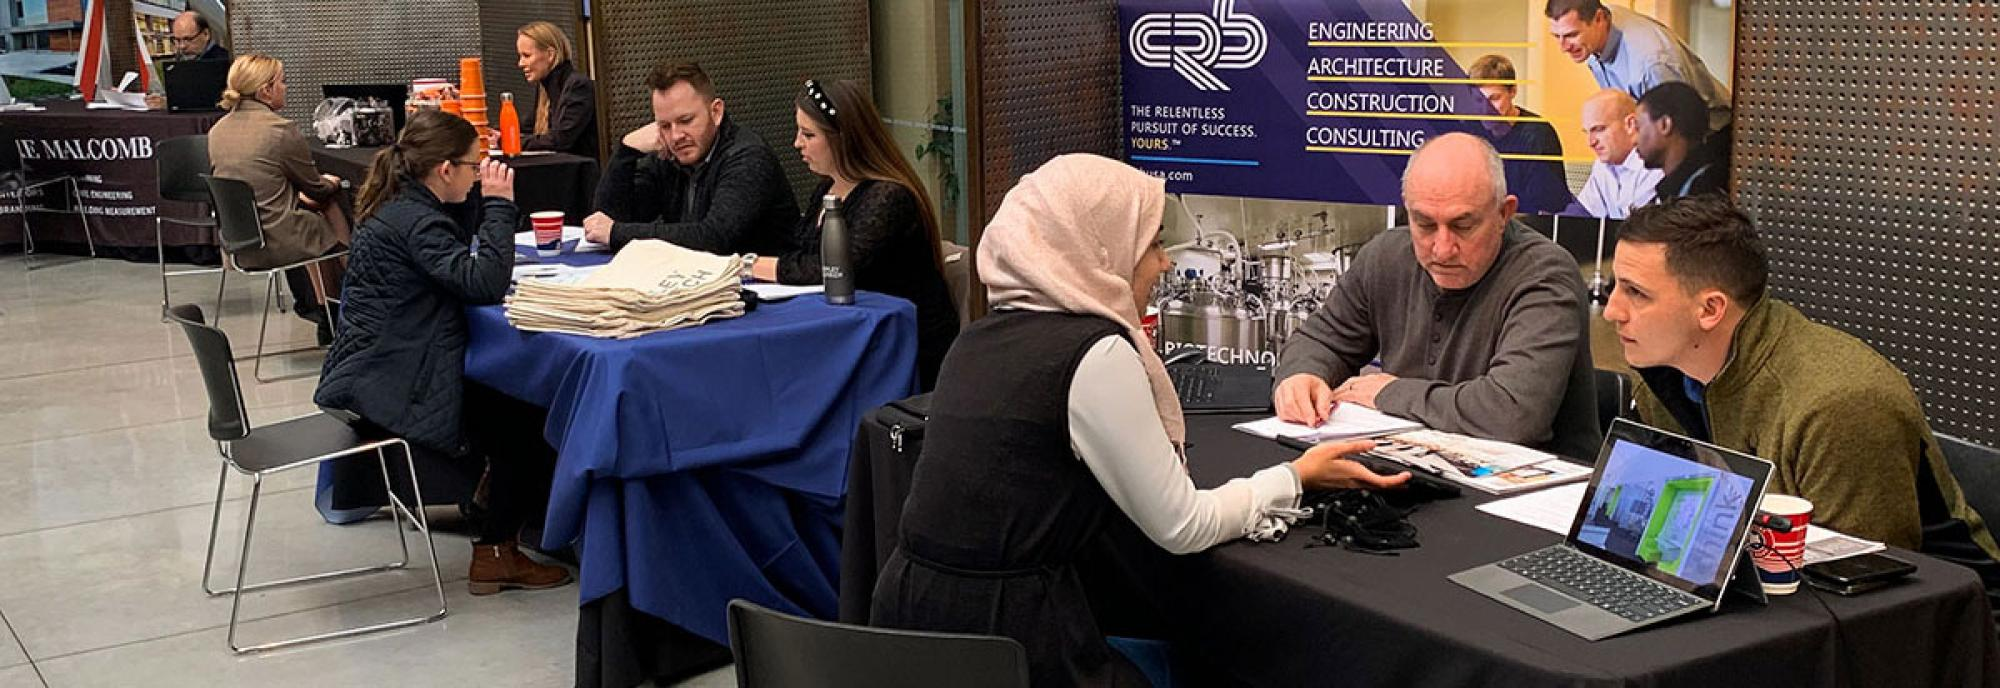 Students and firms at CAPLA Job Interview Fair